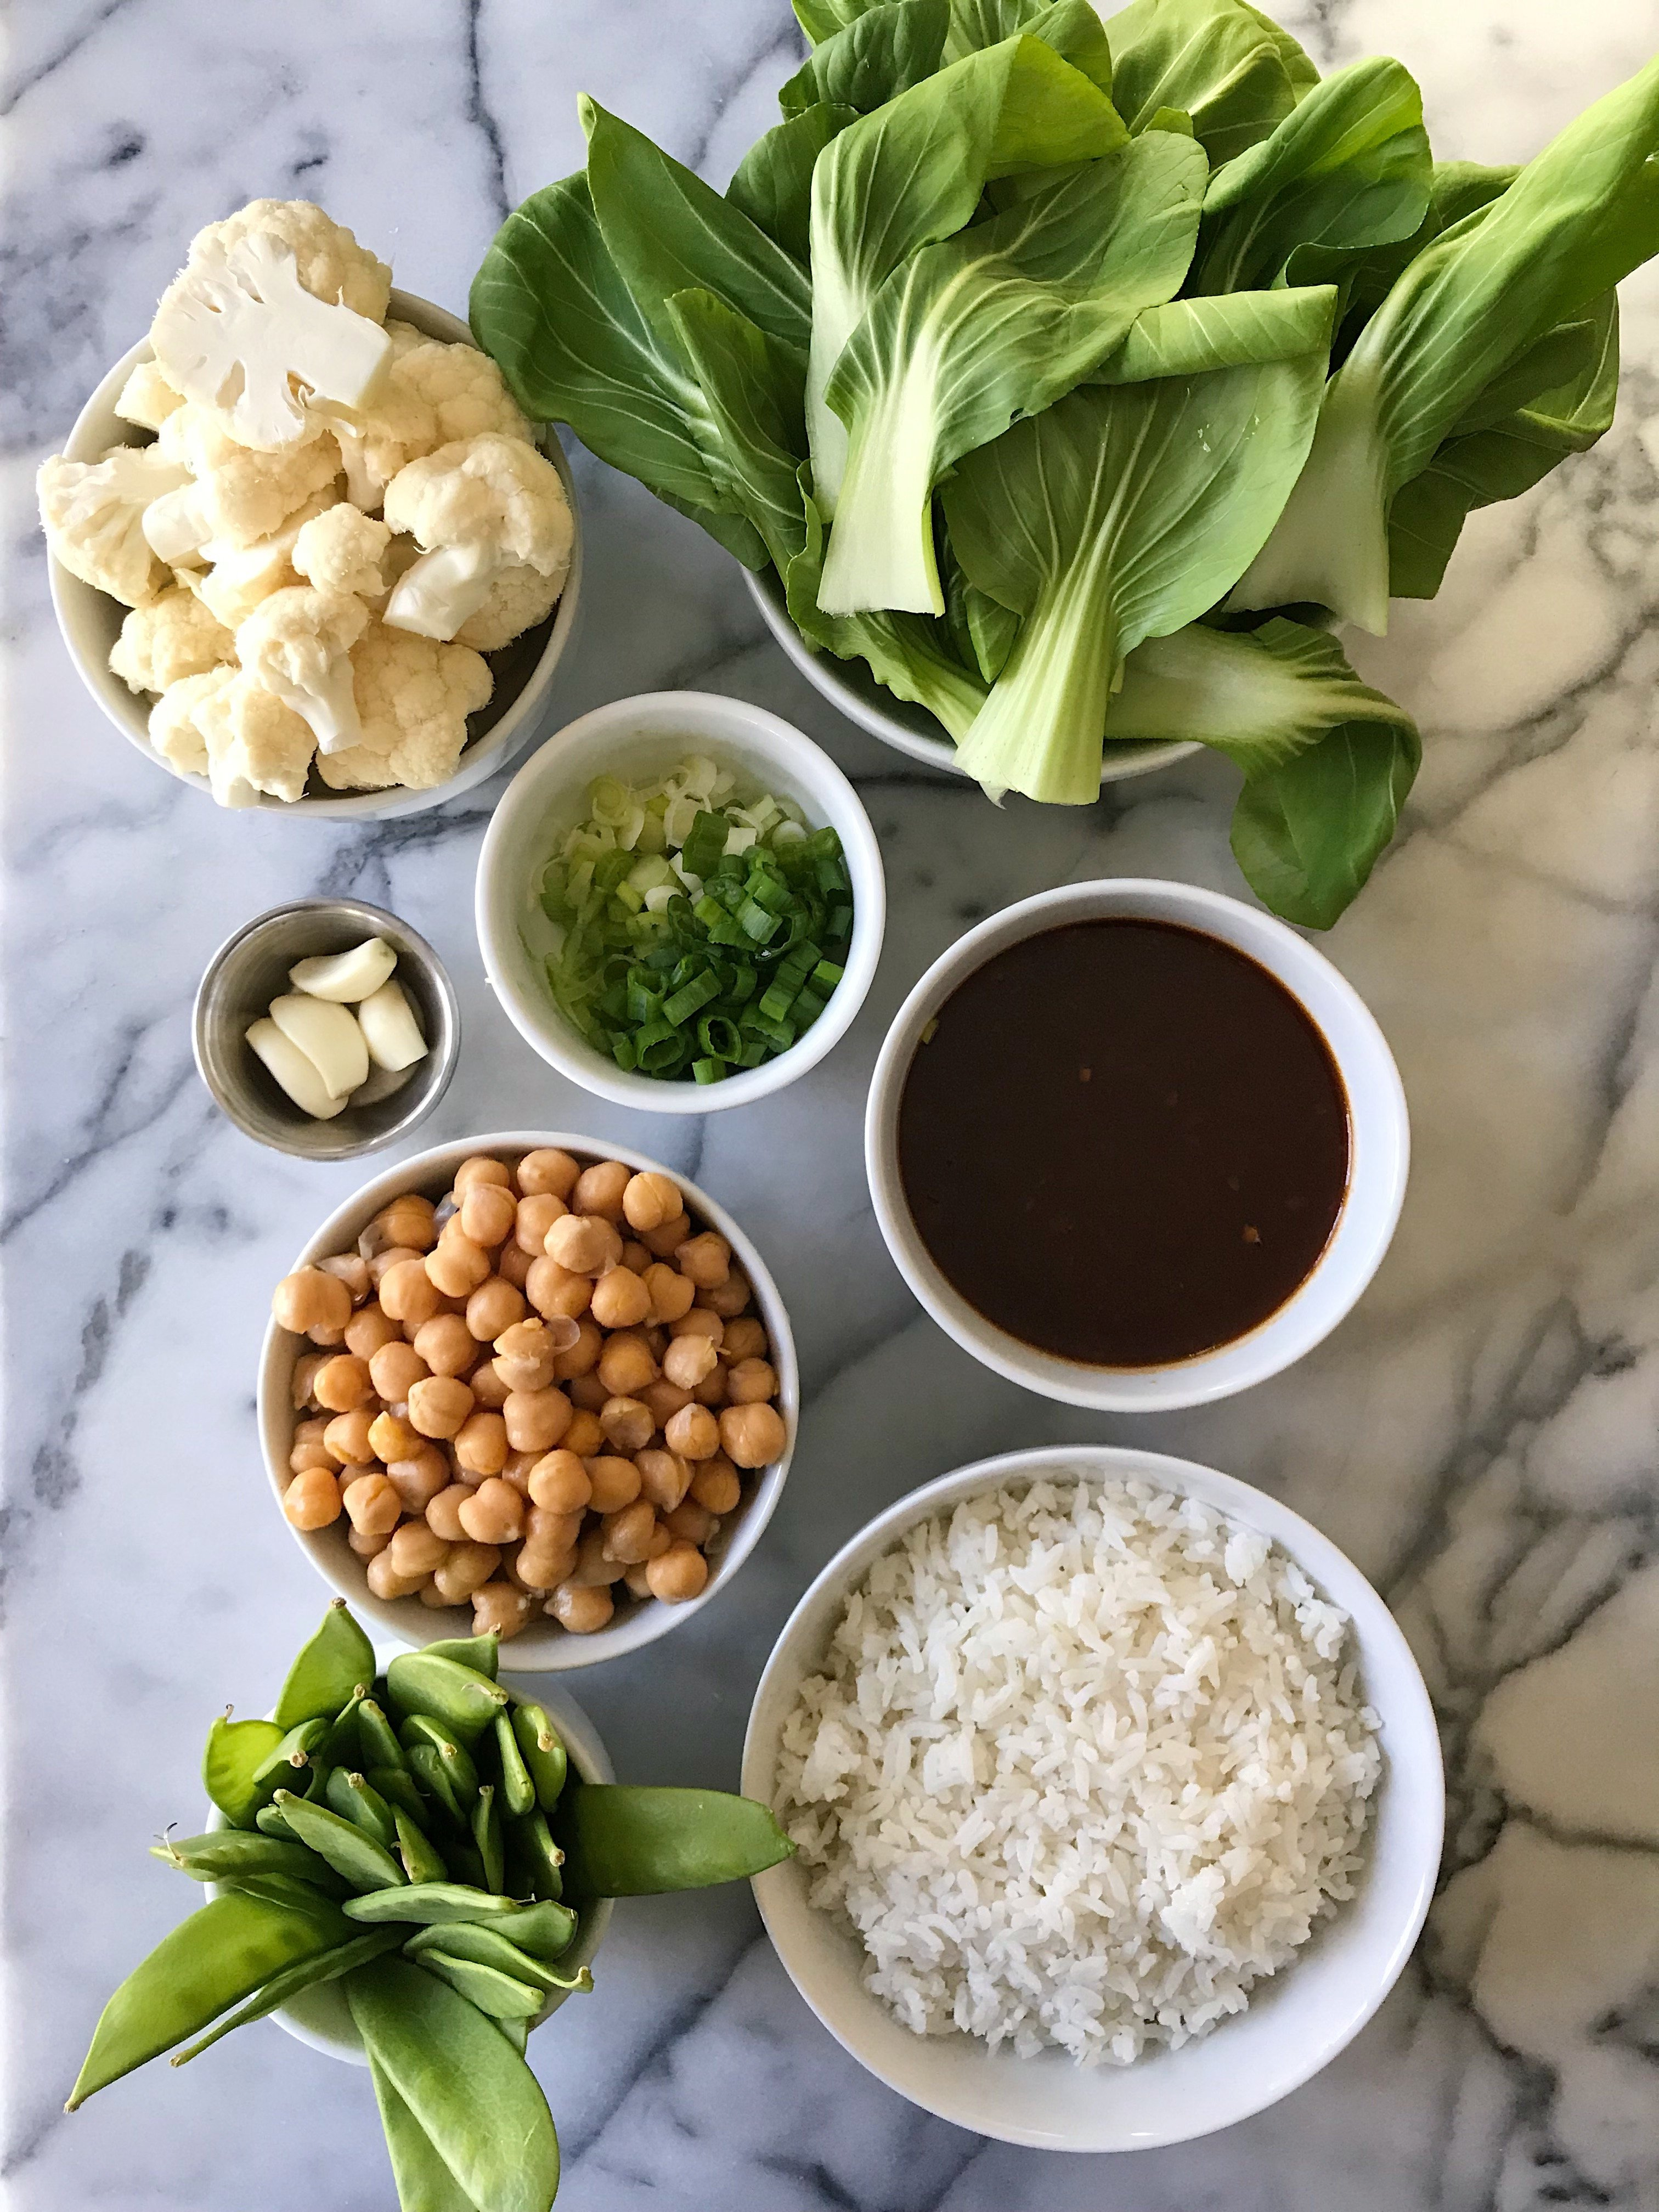 gluten-free general tso's chickpeas and veggies #glutenfree #glutenfreerecipes www.healthygffamily.com